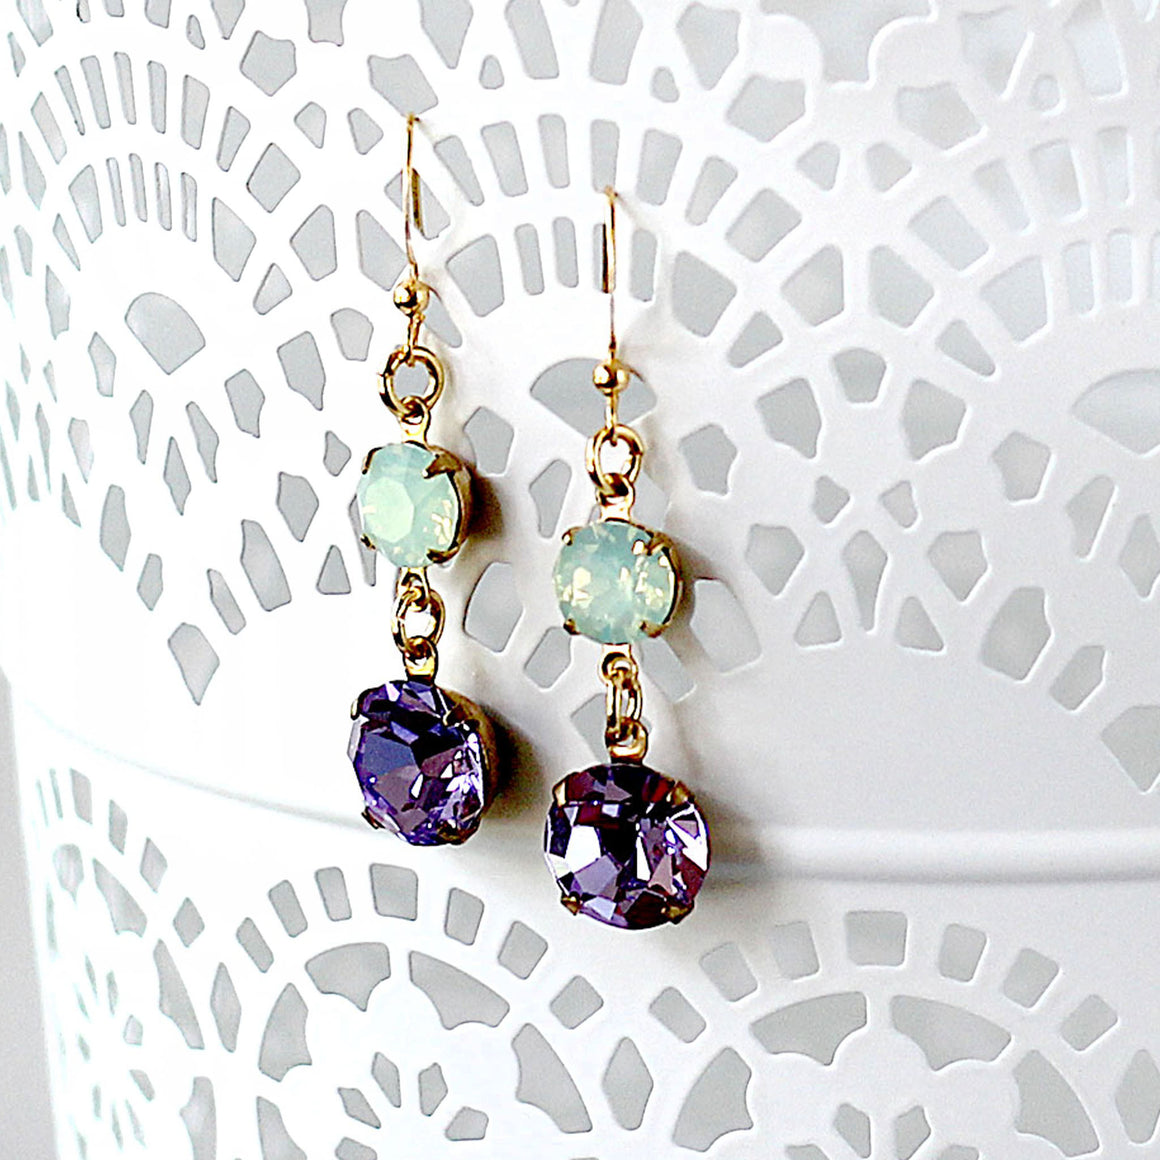 Pale Green and Pale Violet Amethyst Rhinestone Earrings Hanging